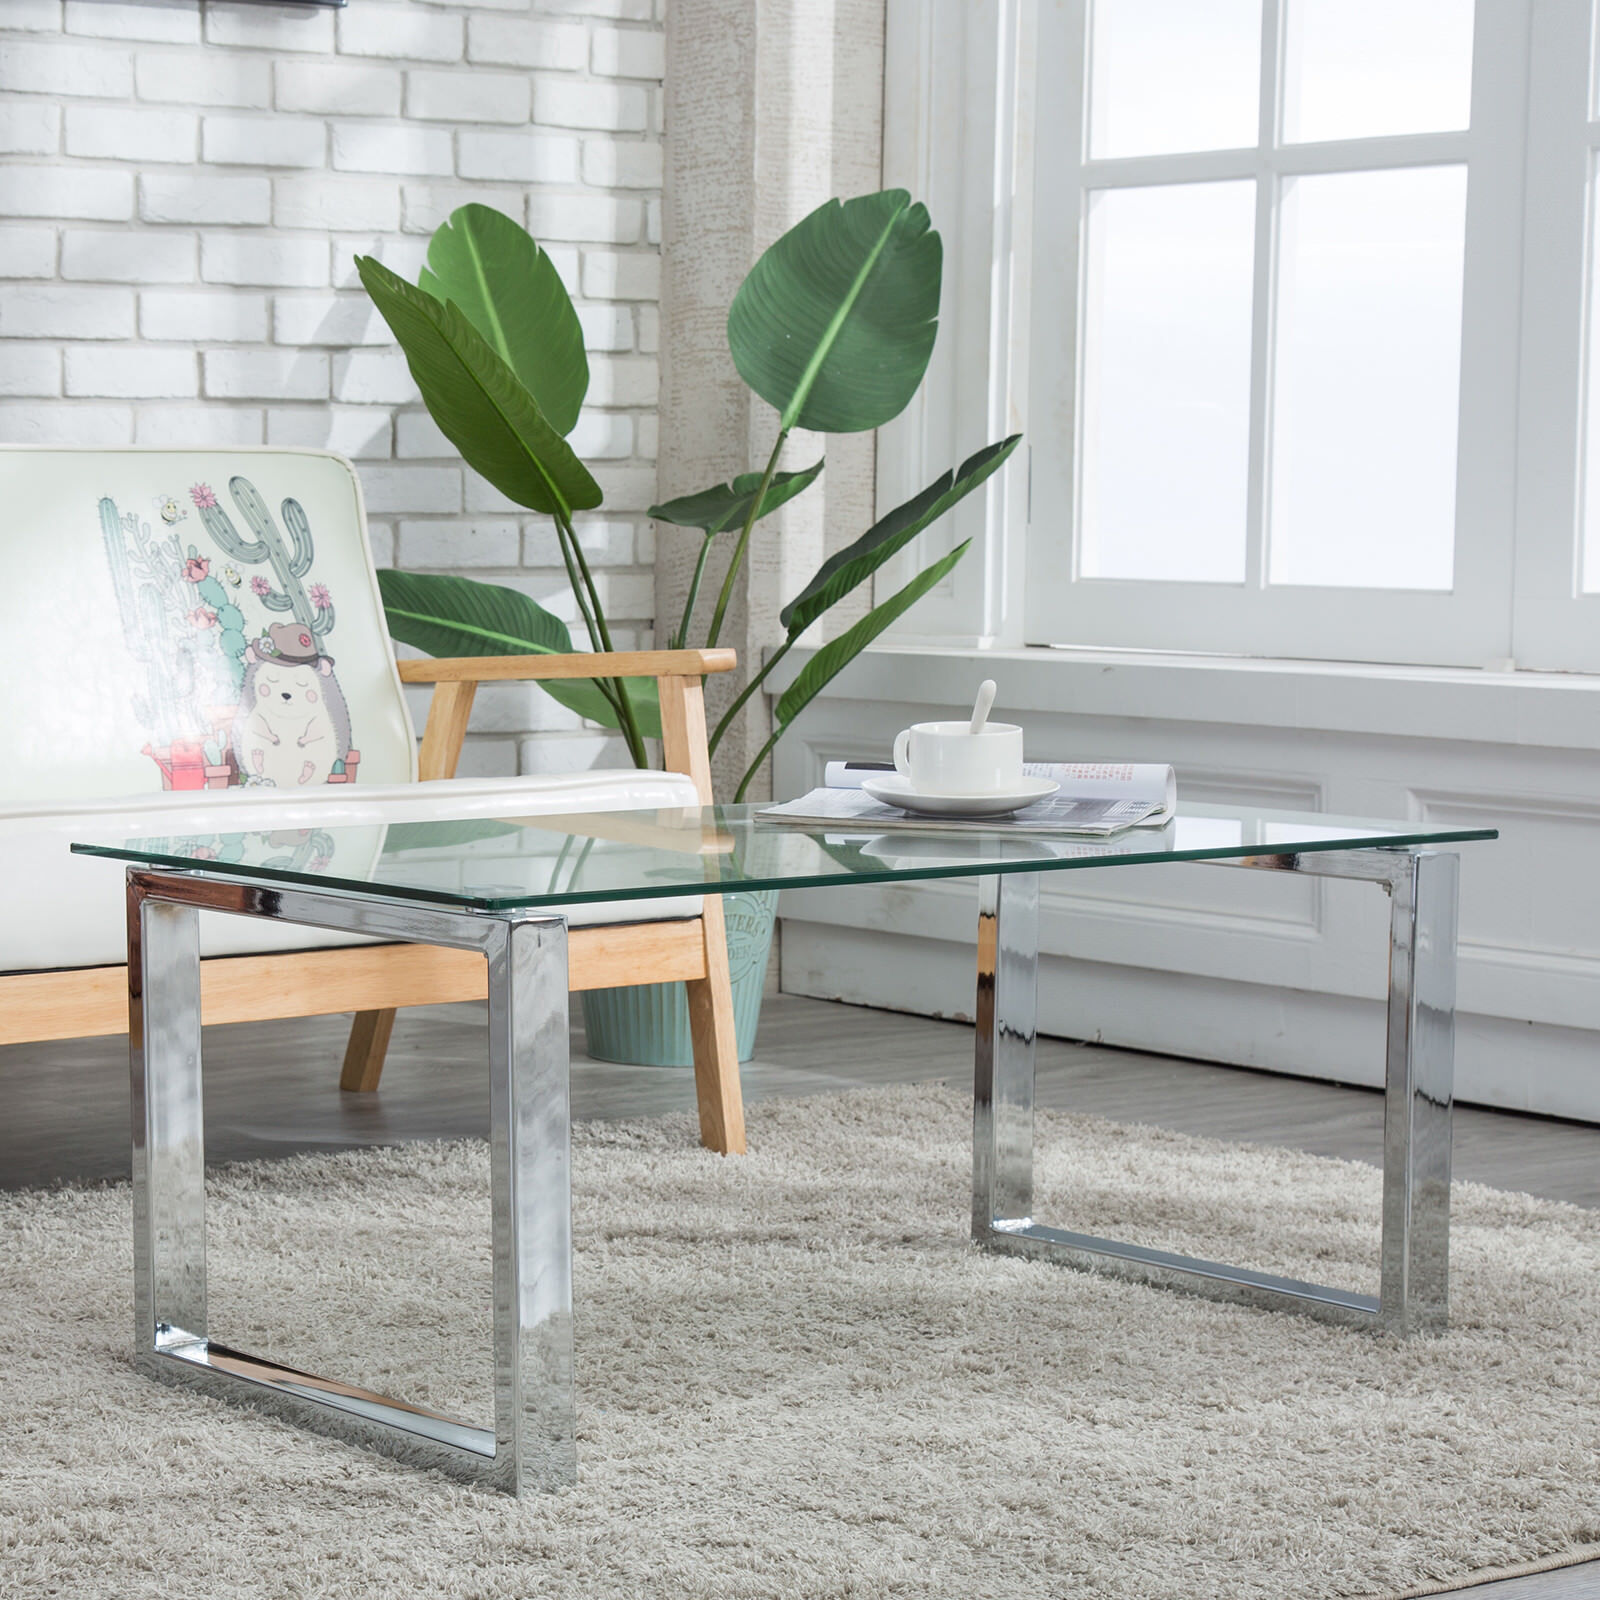 Details About Glass U0026 Stainless Steel Coffee Table Side End Table Living  Room Furniture Clear